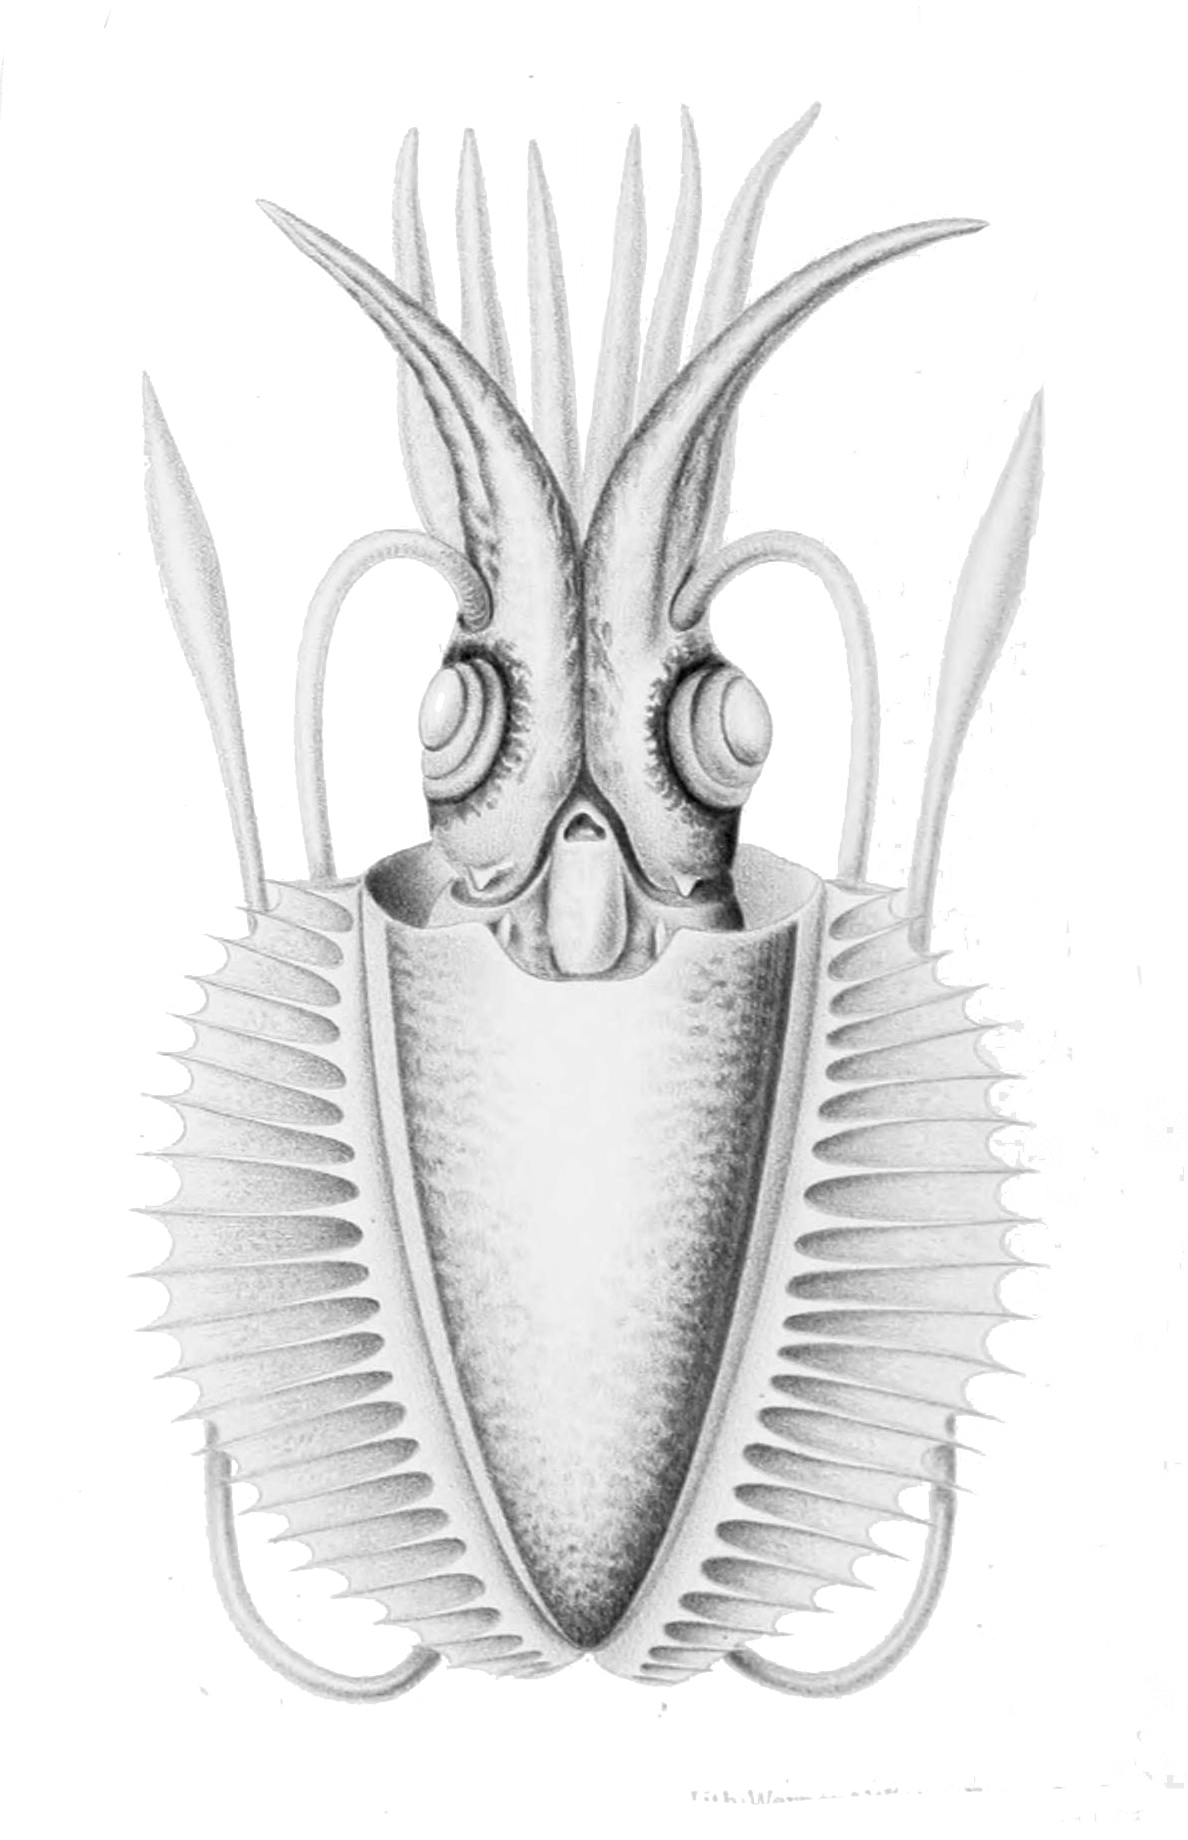 Image of Comb-finned Squid